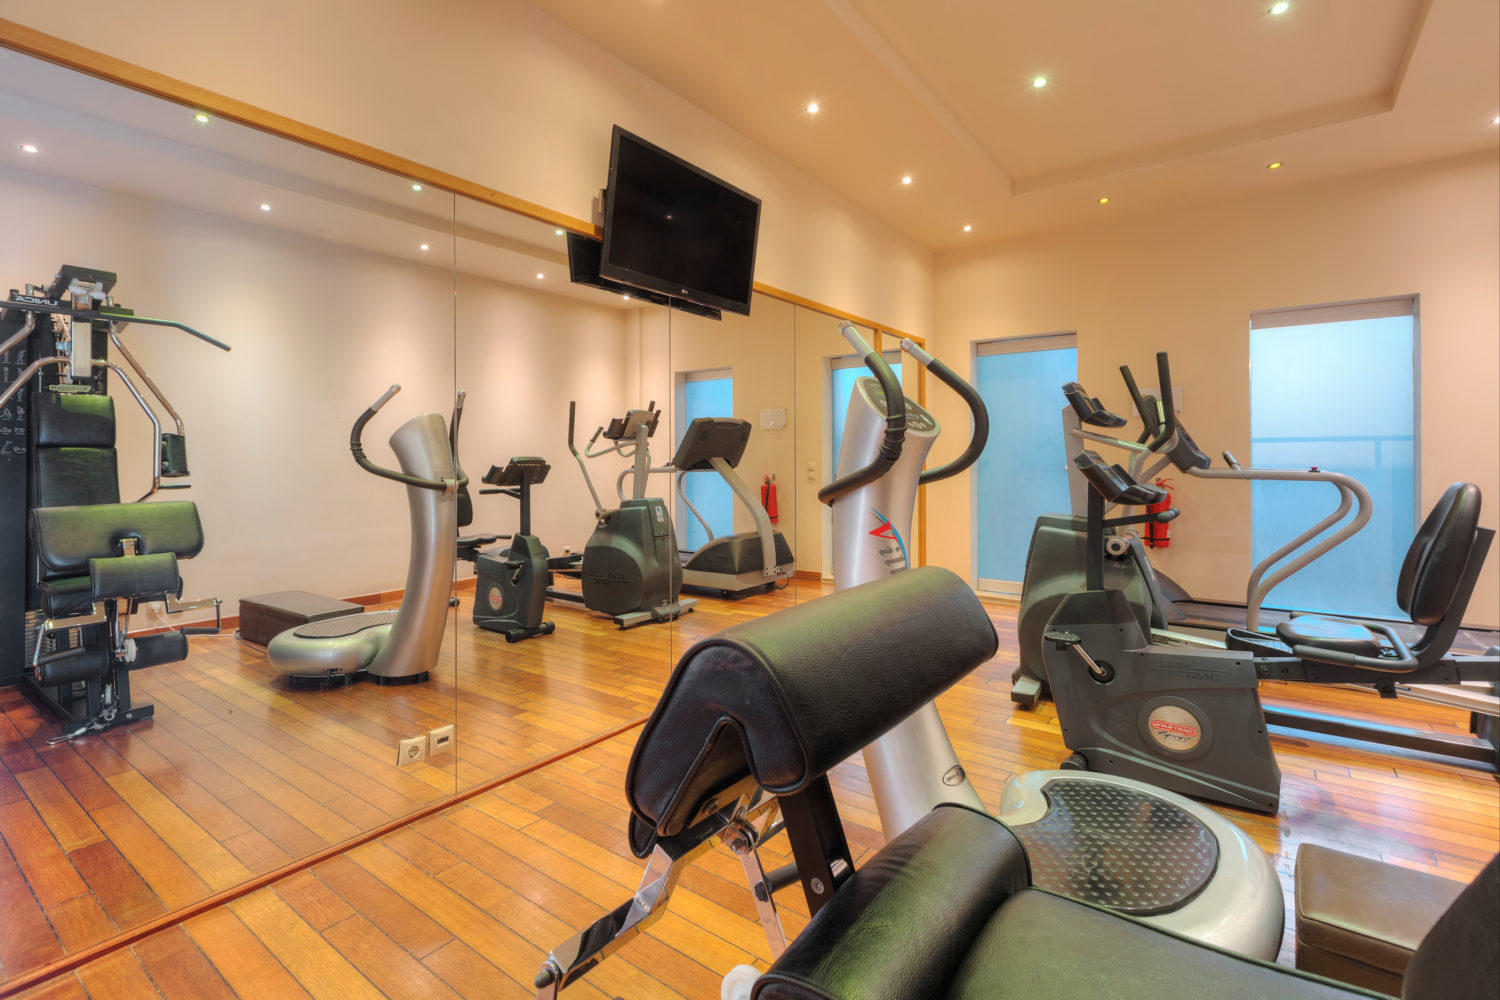 Megaron Hotel Health Club and Gym